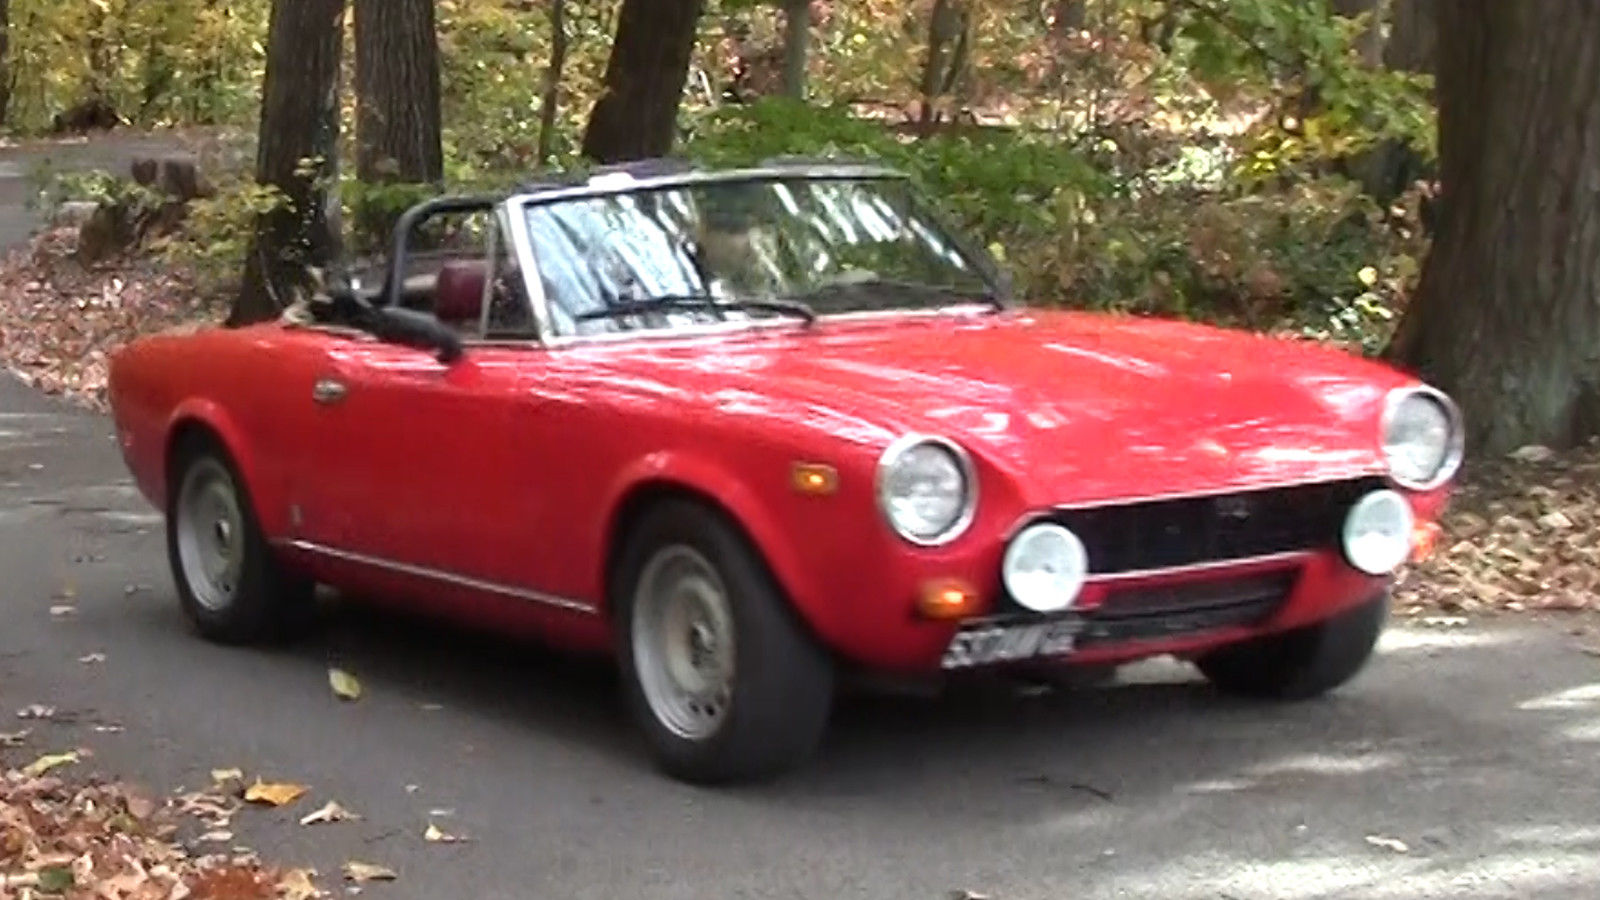 Cars For Sale Newnan Ga 2000: 1979 Fiat Spider 2000 For Sale